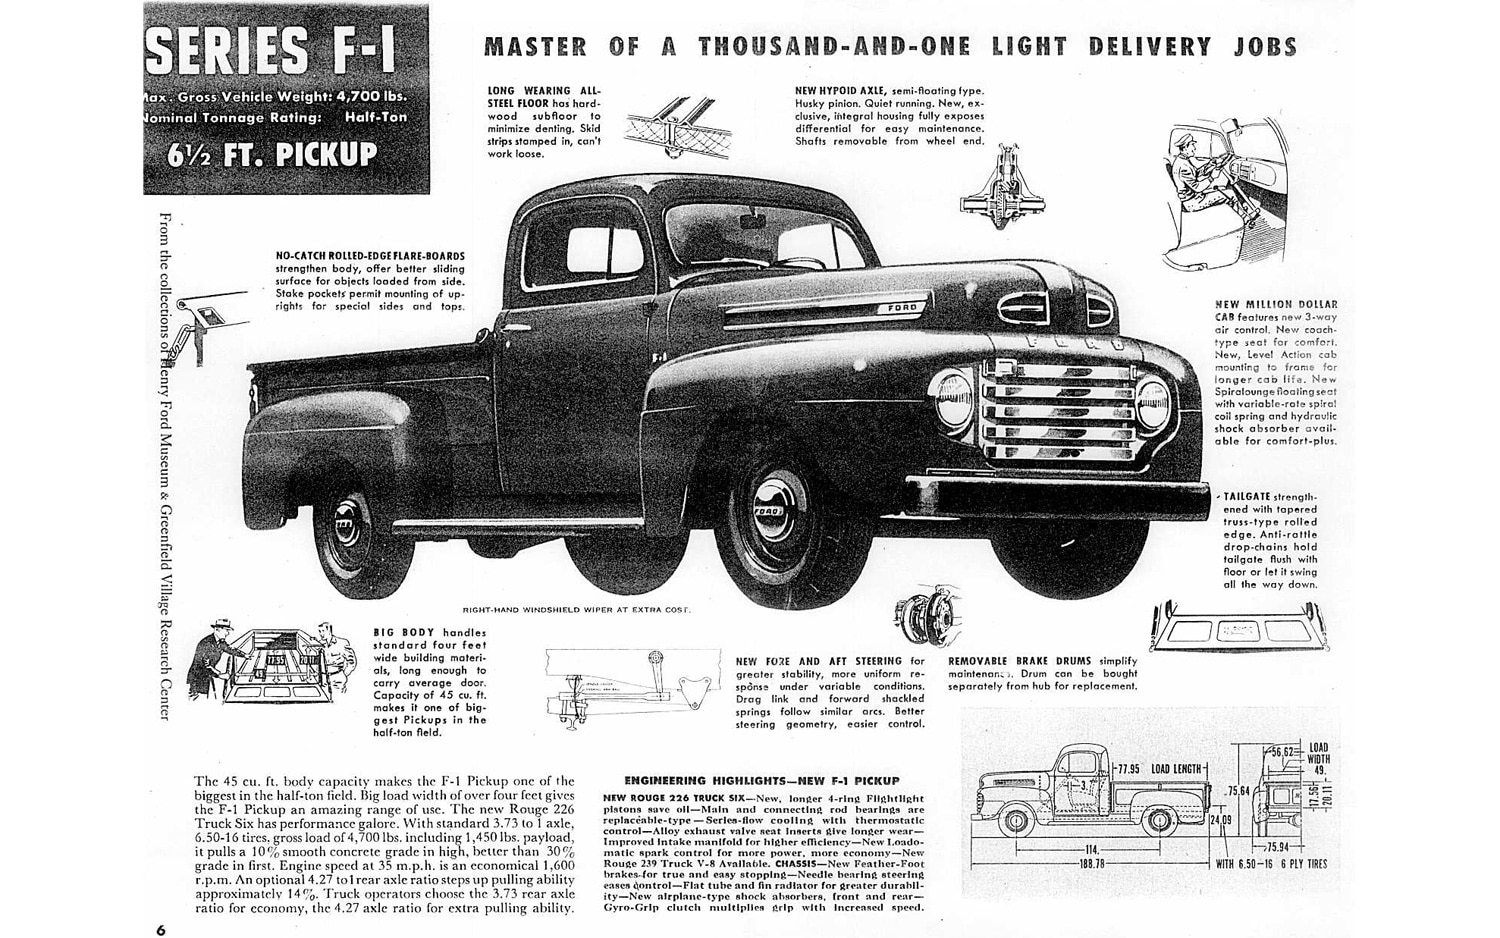 1948 Ford Truck Wiring Diagram F1 Drawing Pixshark Com Images Diagrams 1500x938